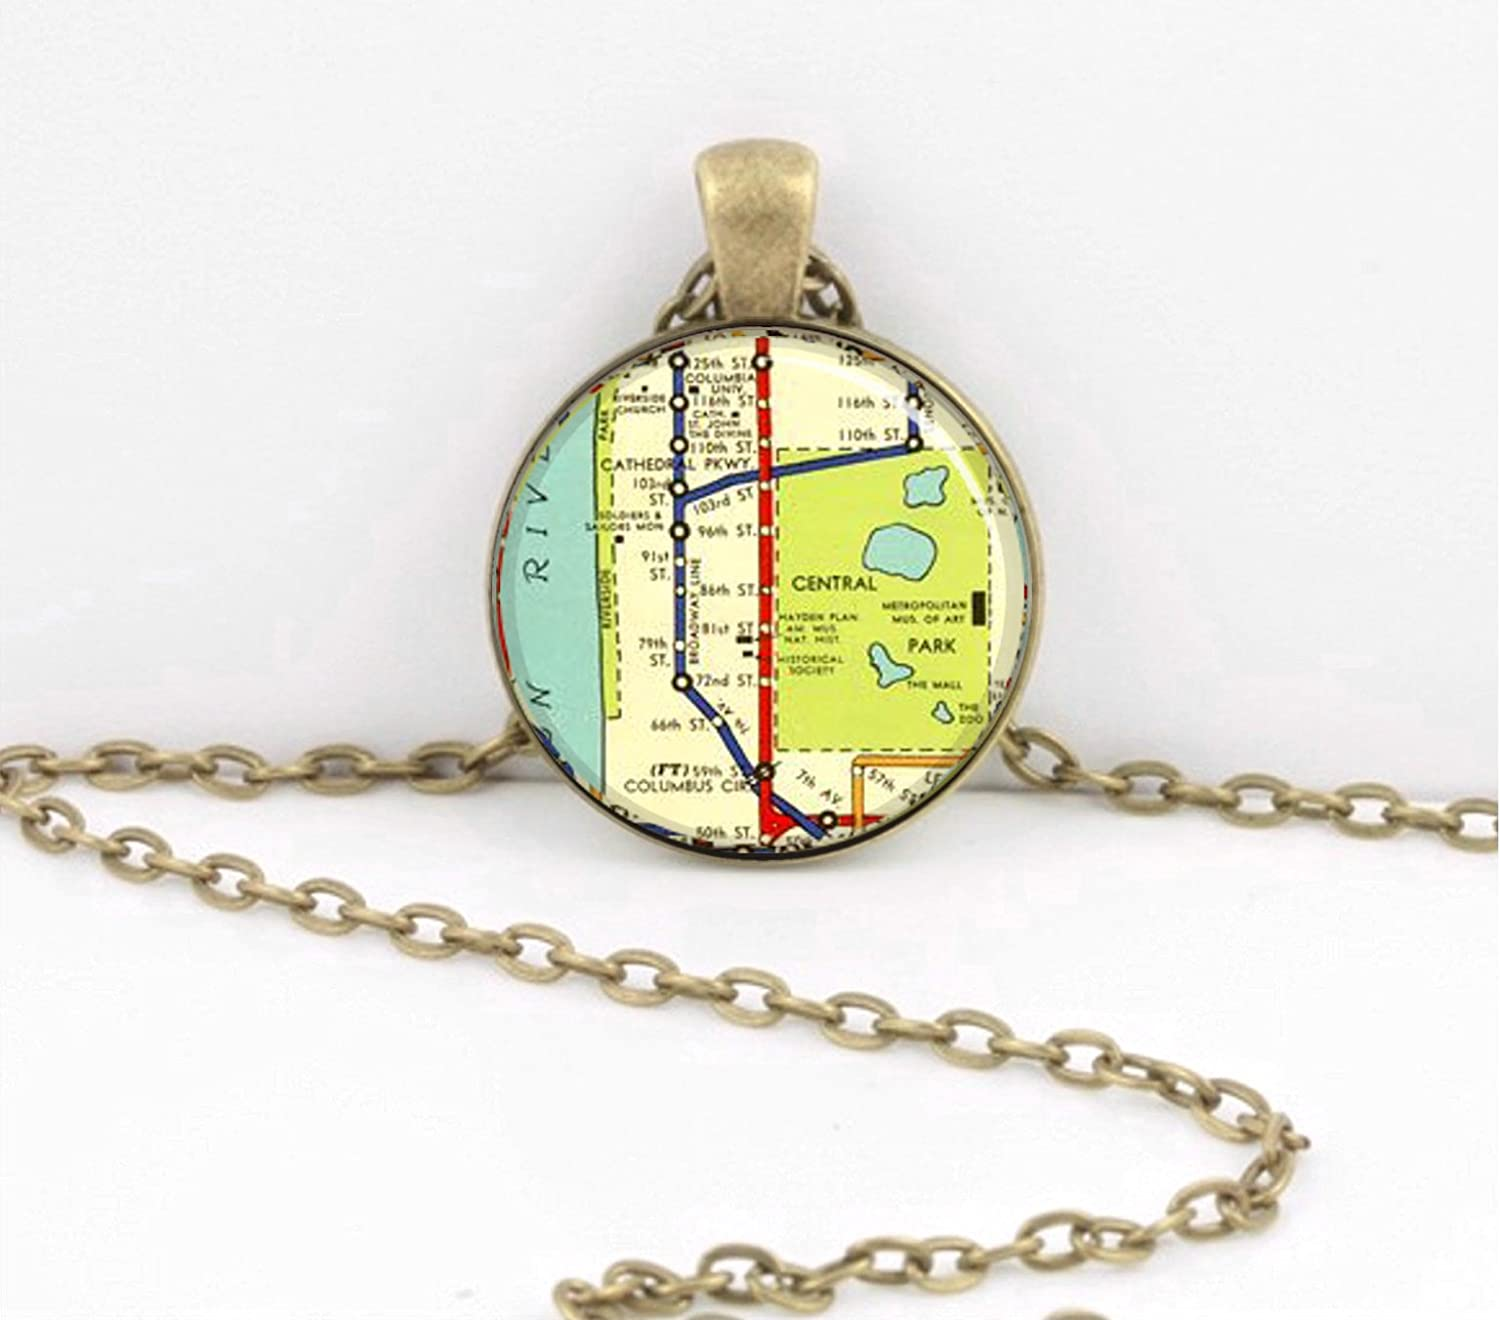 Nyc Subway Map Upper Manhattan.Manhattan New York Upper West Side Nyc Vintage Subway Map Vintage Map Pendant Necklace Key Ring Travel Gift Jewelry